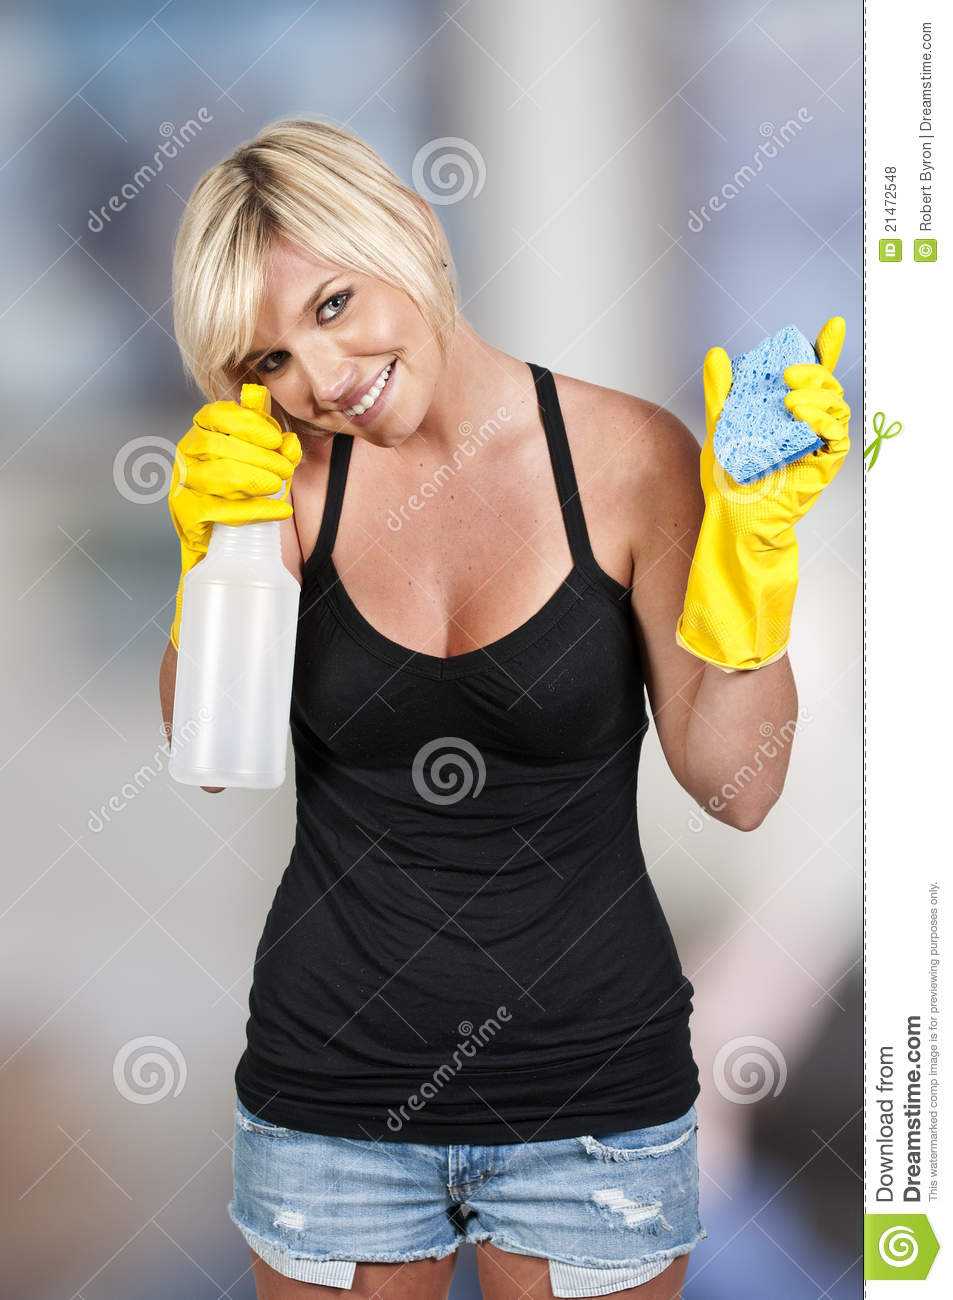 Woman Cleaning House Royalty Free Stock Photos Image